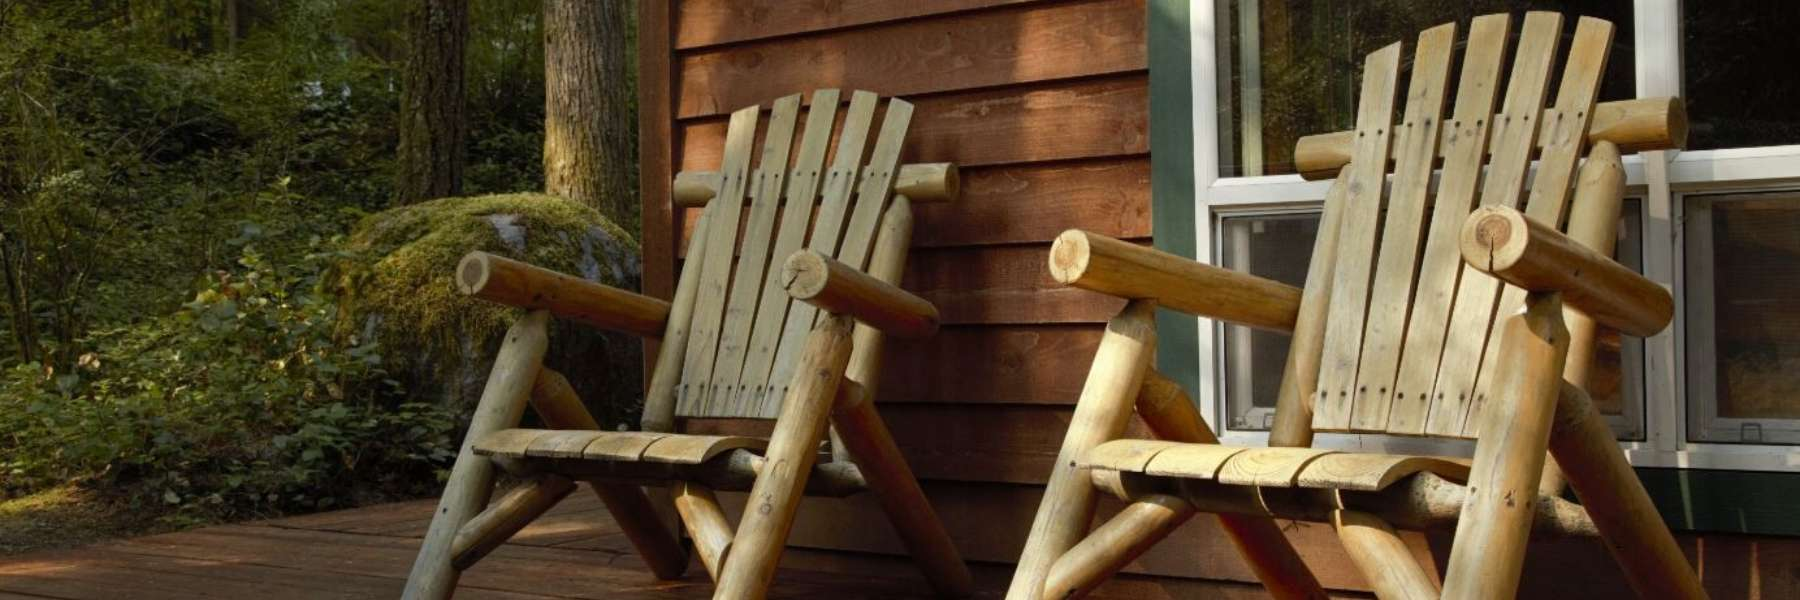 Chairs on the porch of a cabin in the woods